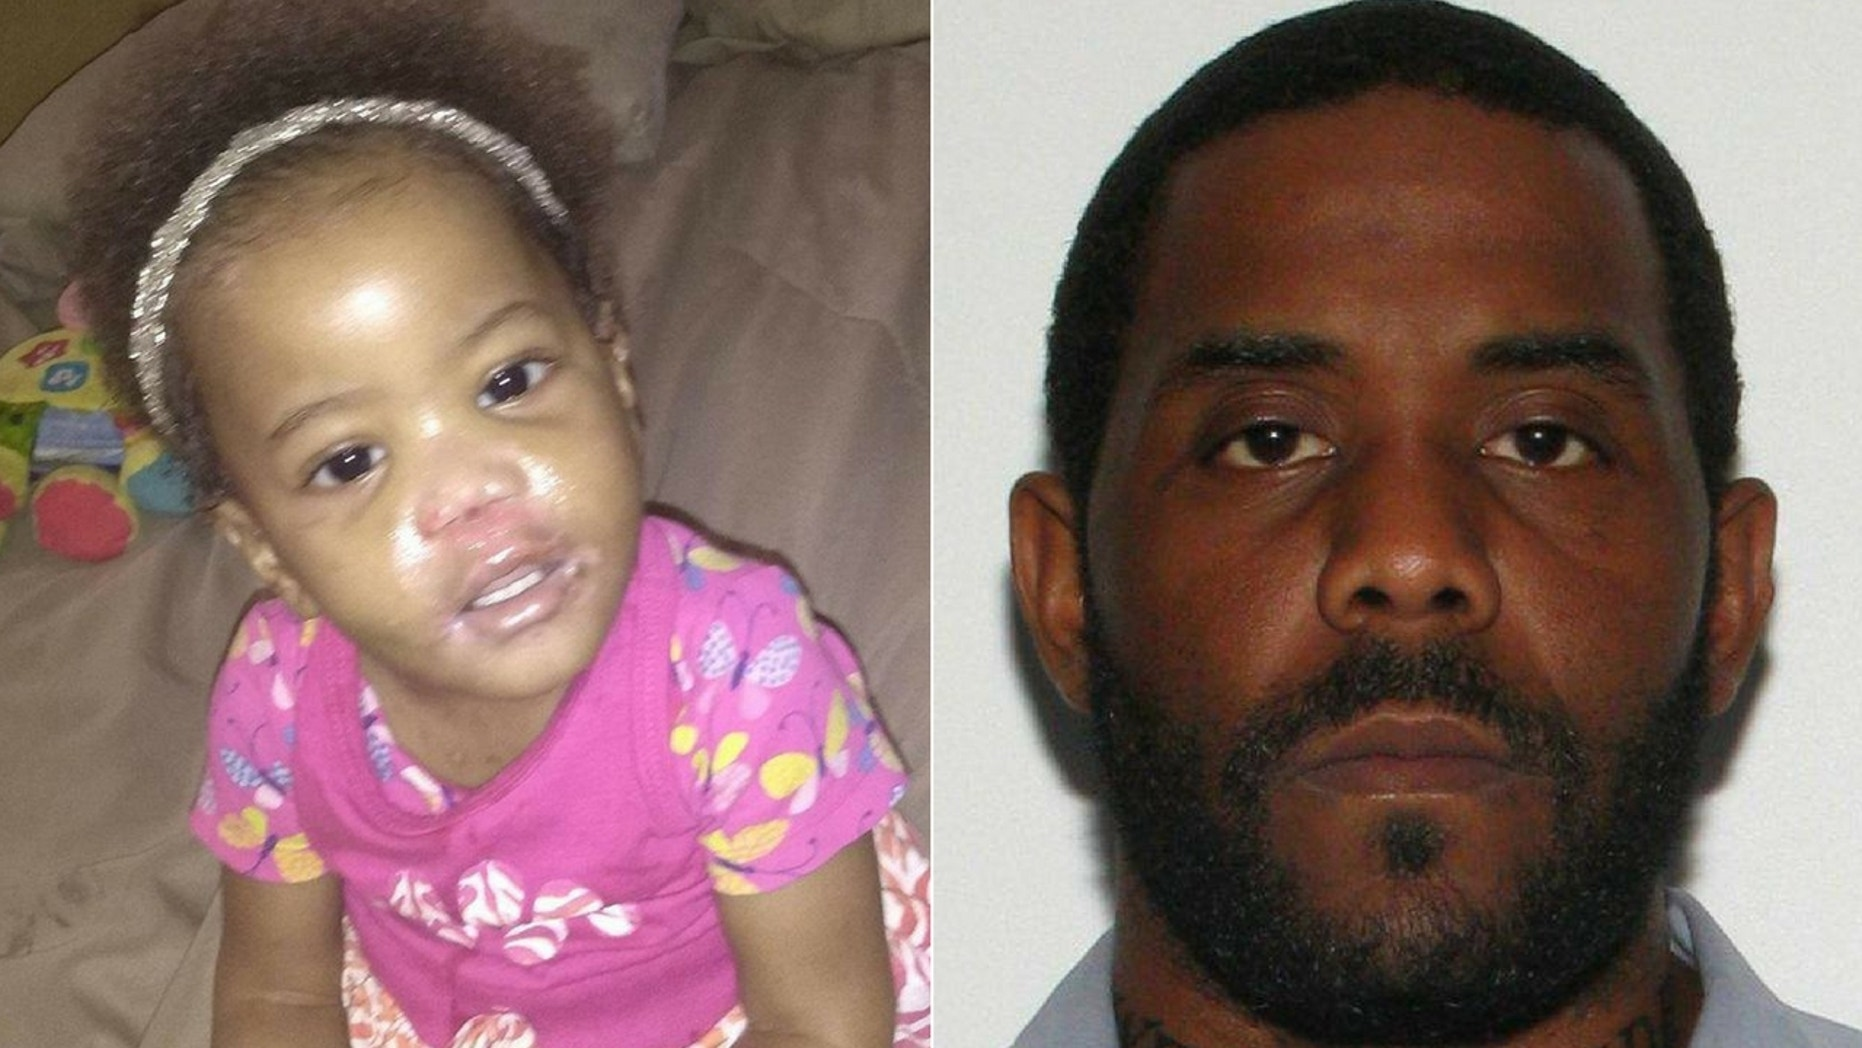 Travis Lamont Plummer was arrested after his 2-year-old daughter's body was found in a suitcase in New Jersey.